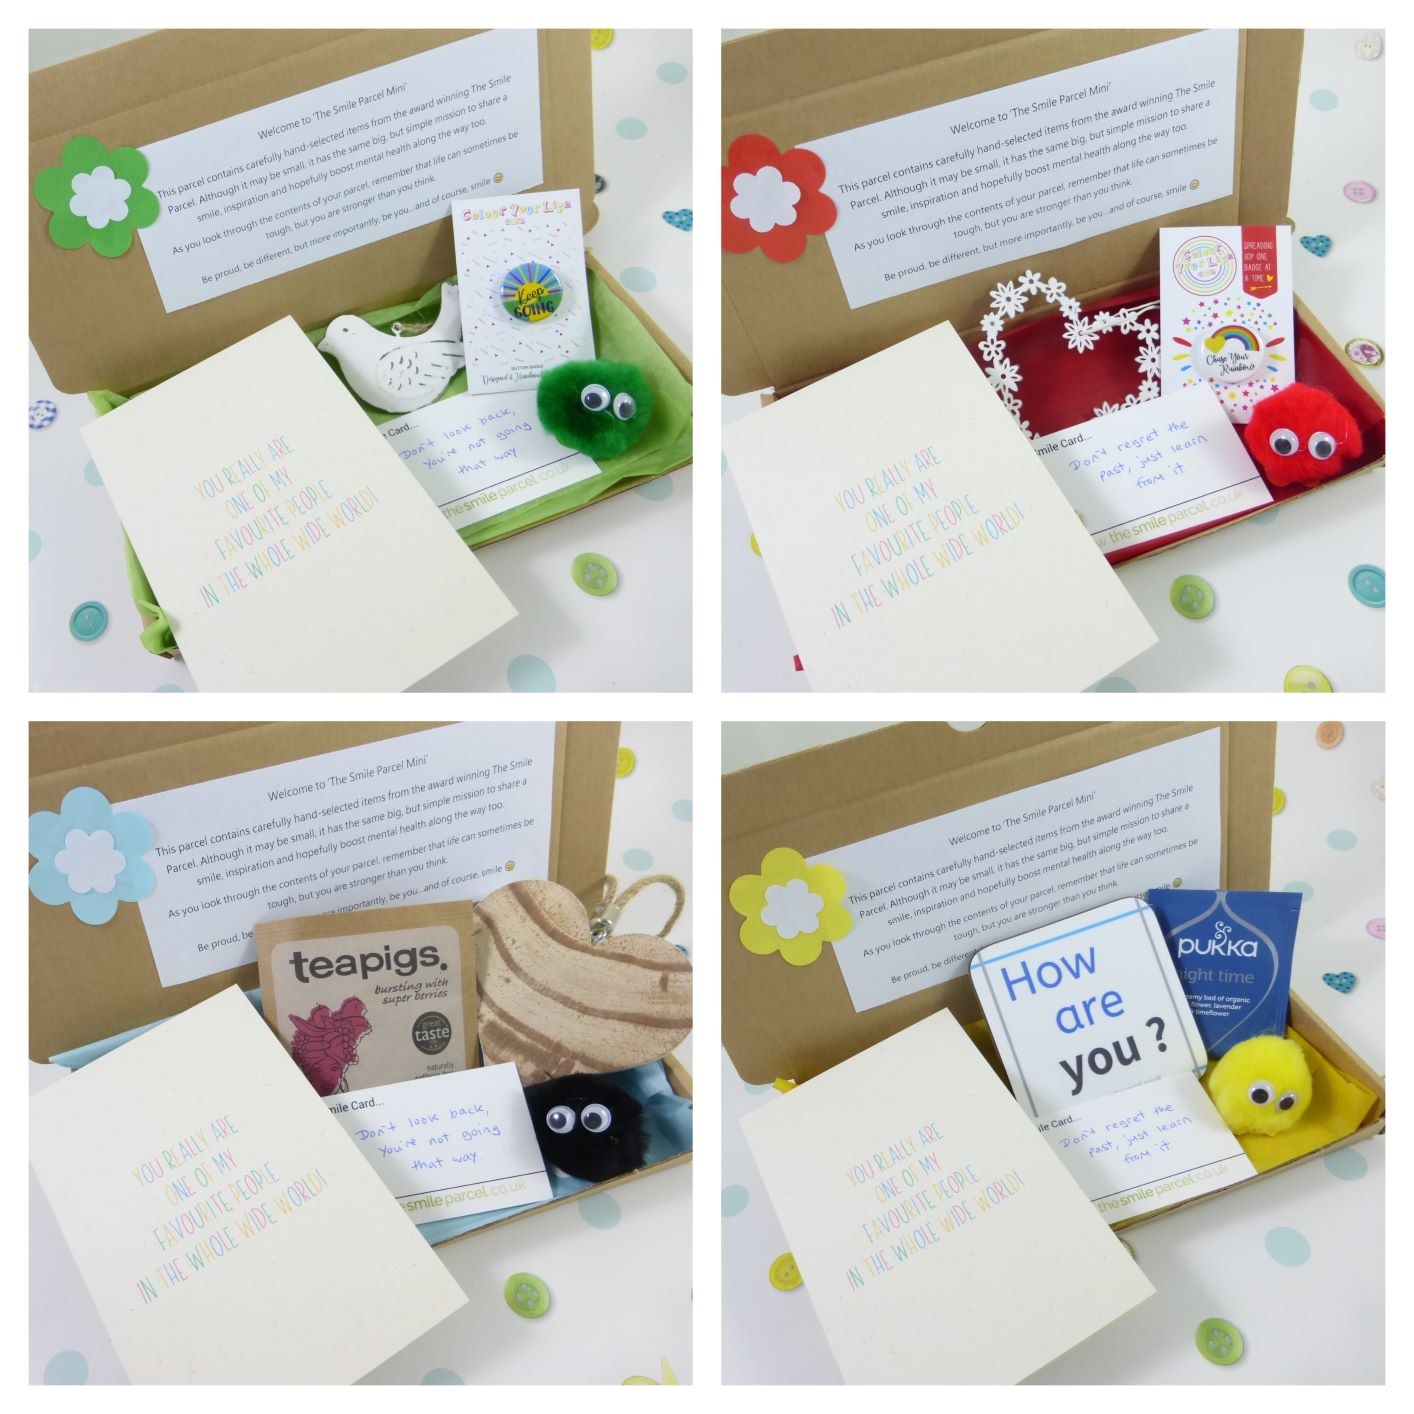 Best Friend Gift, Letterbox Friendly, Pick Me Up Gift, The Smile Parcel Mini, Self Care Box, Mental Health Gift, Just Because Kind Shop 3